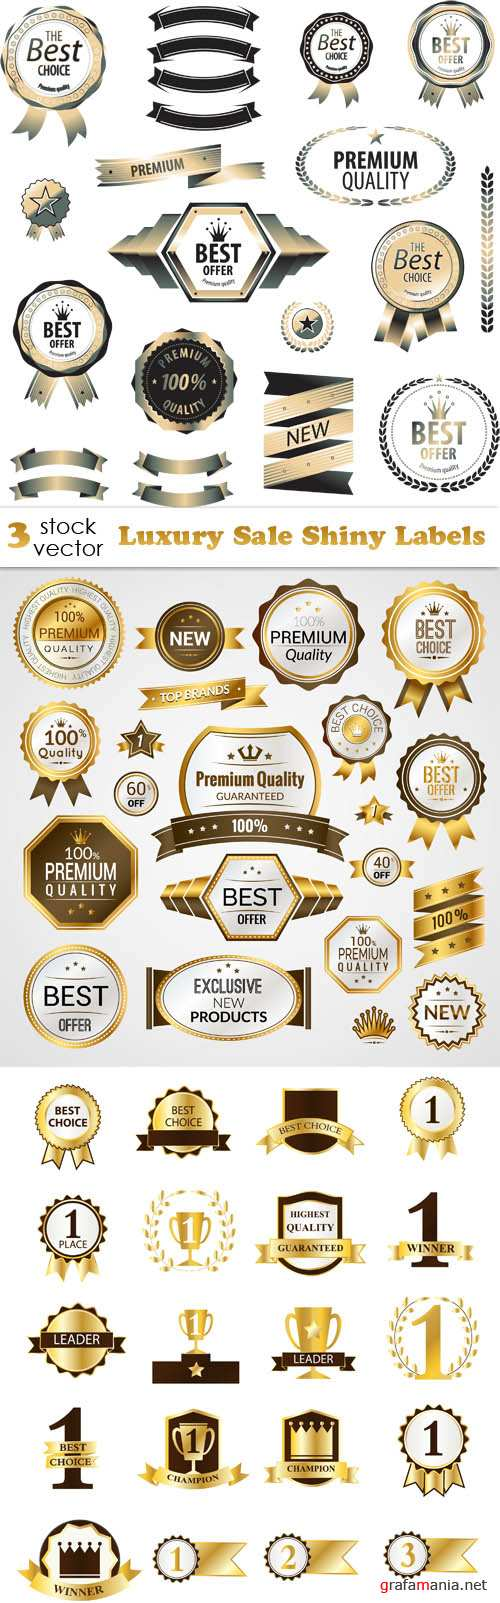 Vectors - Luxury Sale Shiny Labels